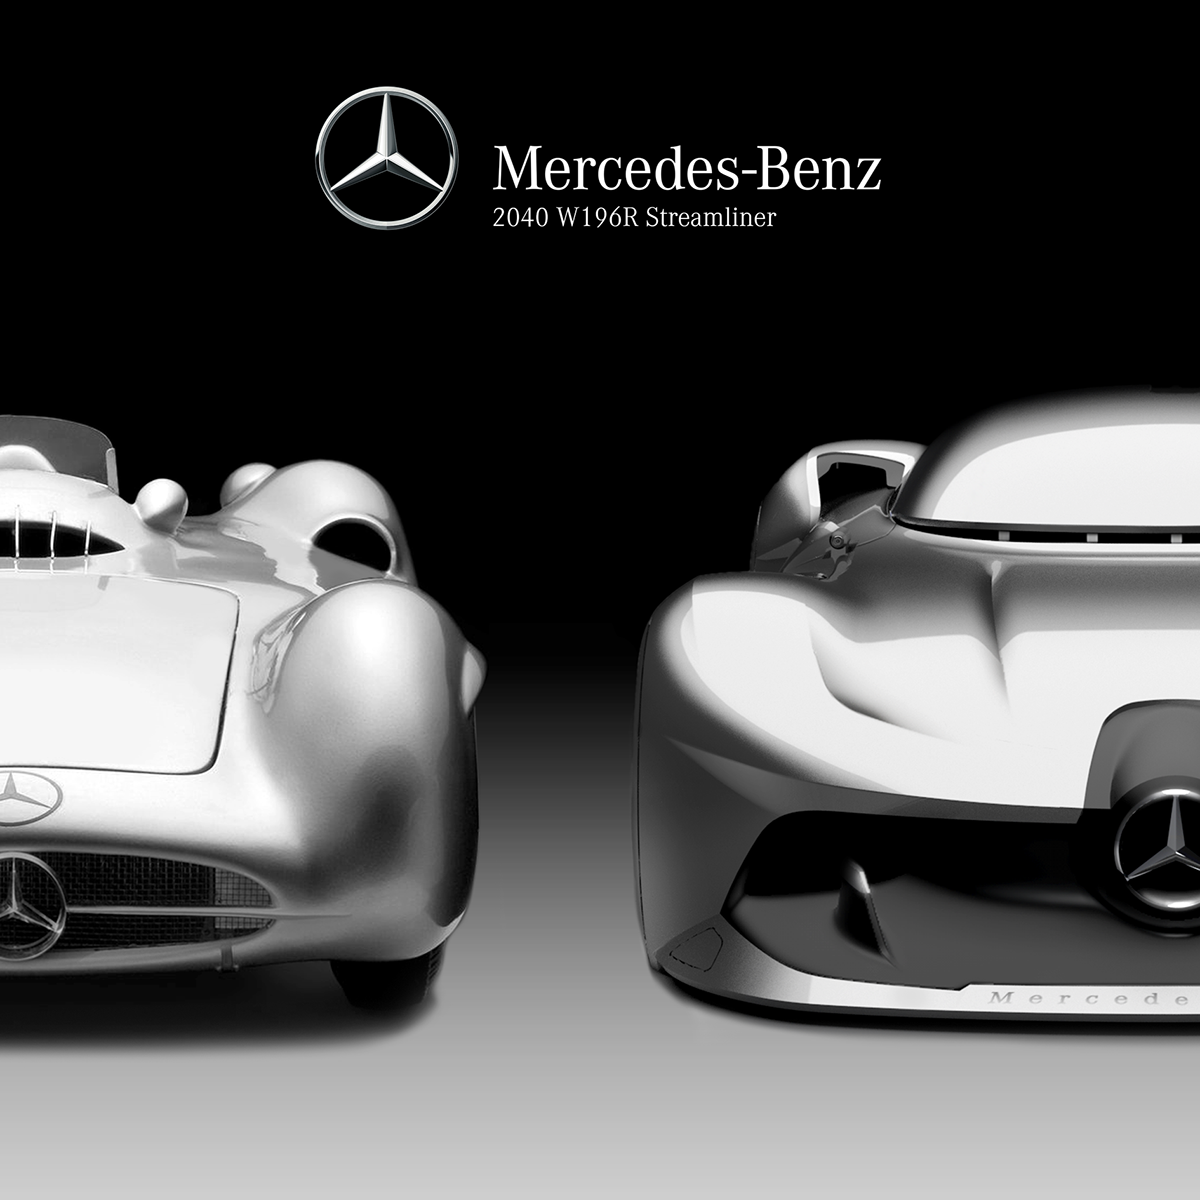 Mercedes-Benz W196R Streamliner (1)